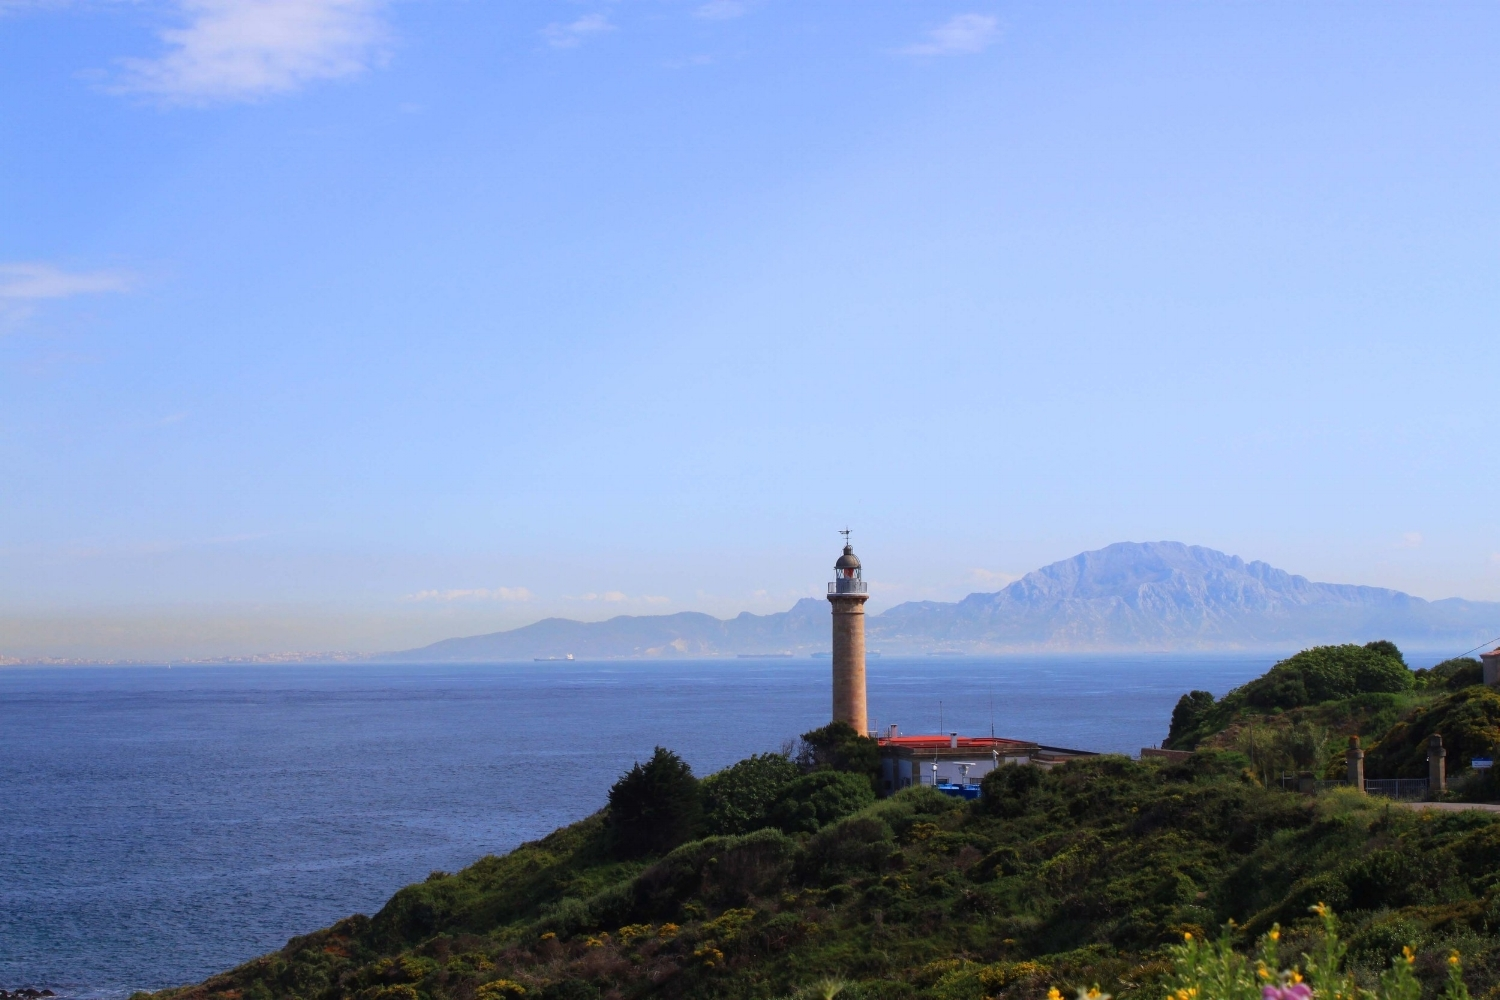 The Strait of Gibraltar view that inspired Paco de Lucia's  Punta del Faro  IMAGE  Falconaumanni  -  CC BY-SA 3.0